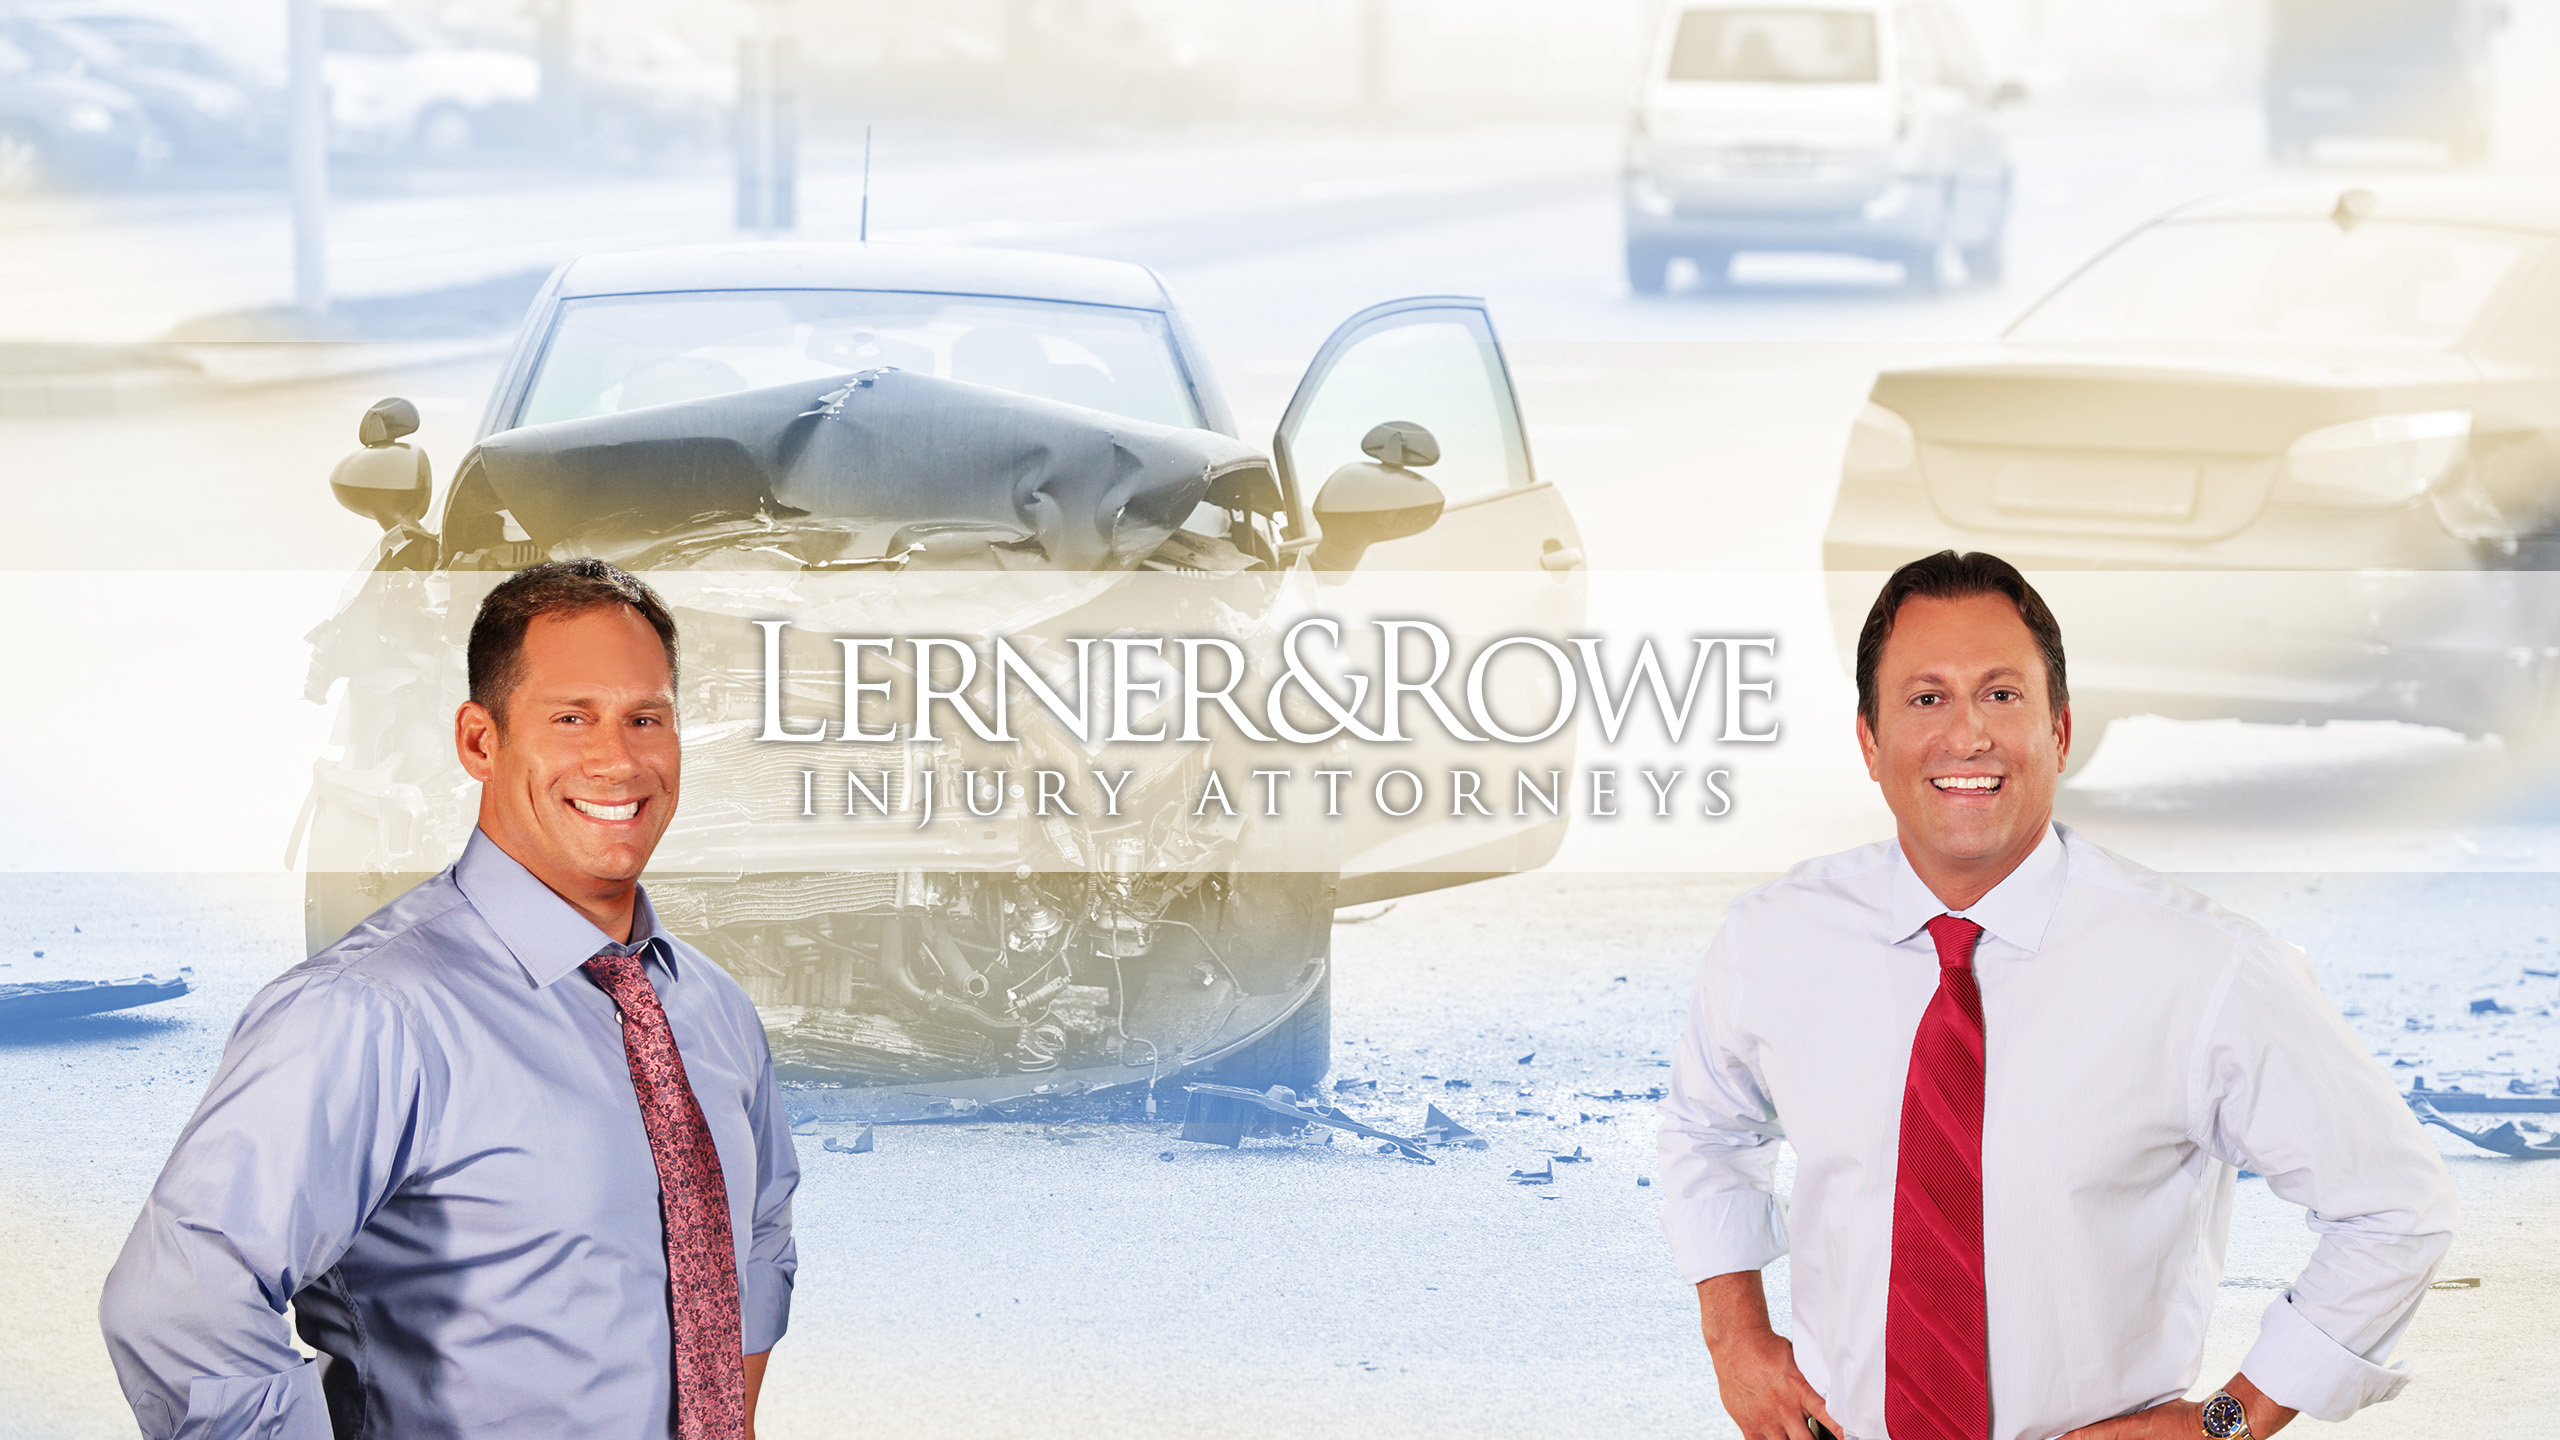 Lerner and Rowe Injury Attorneys reviews | Personal Injury Law at 4795 S Durango Drive - Las Vegas NV